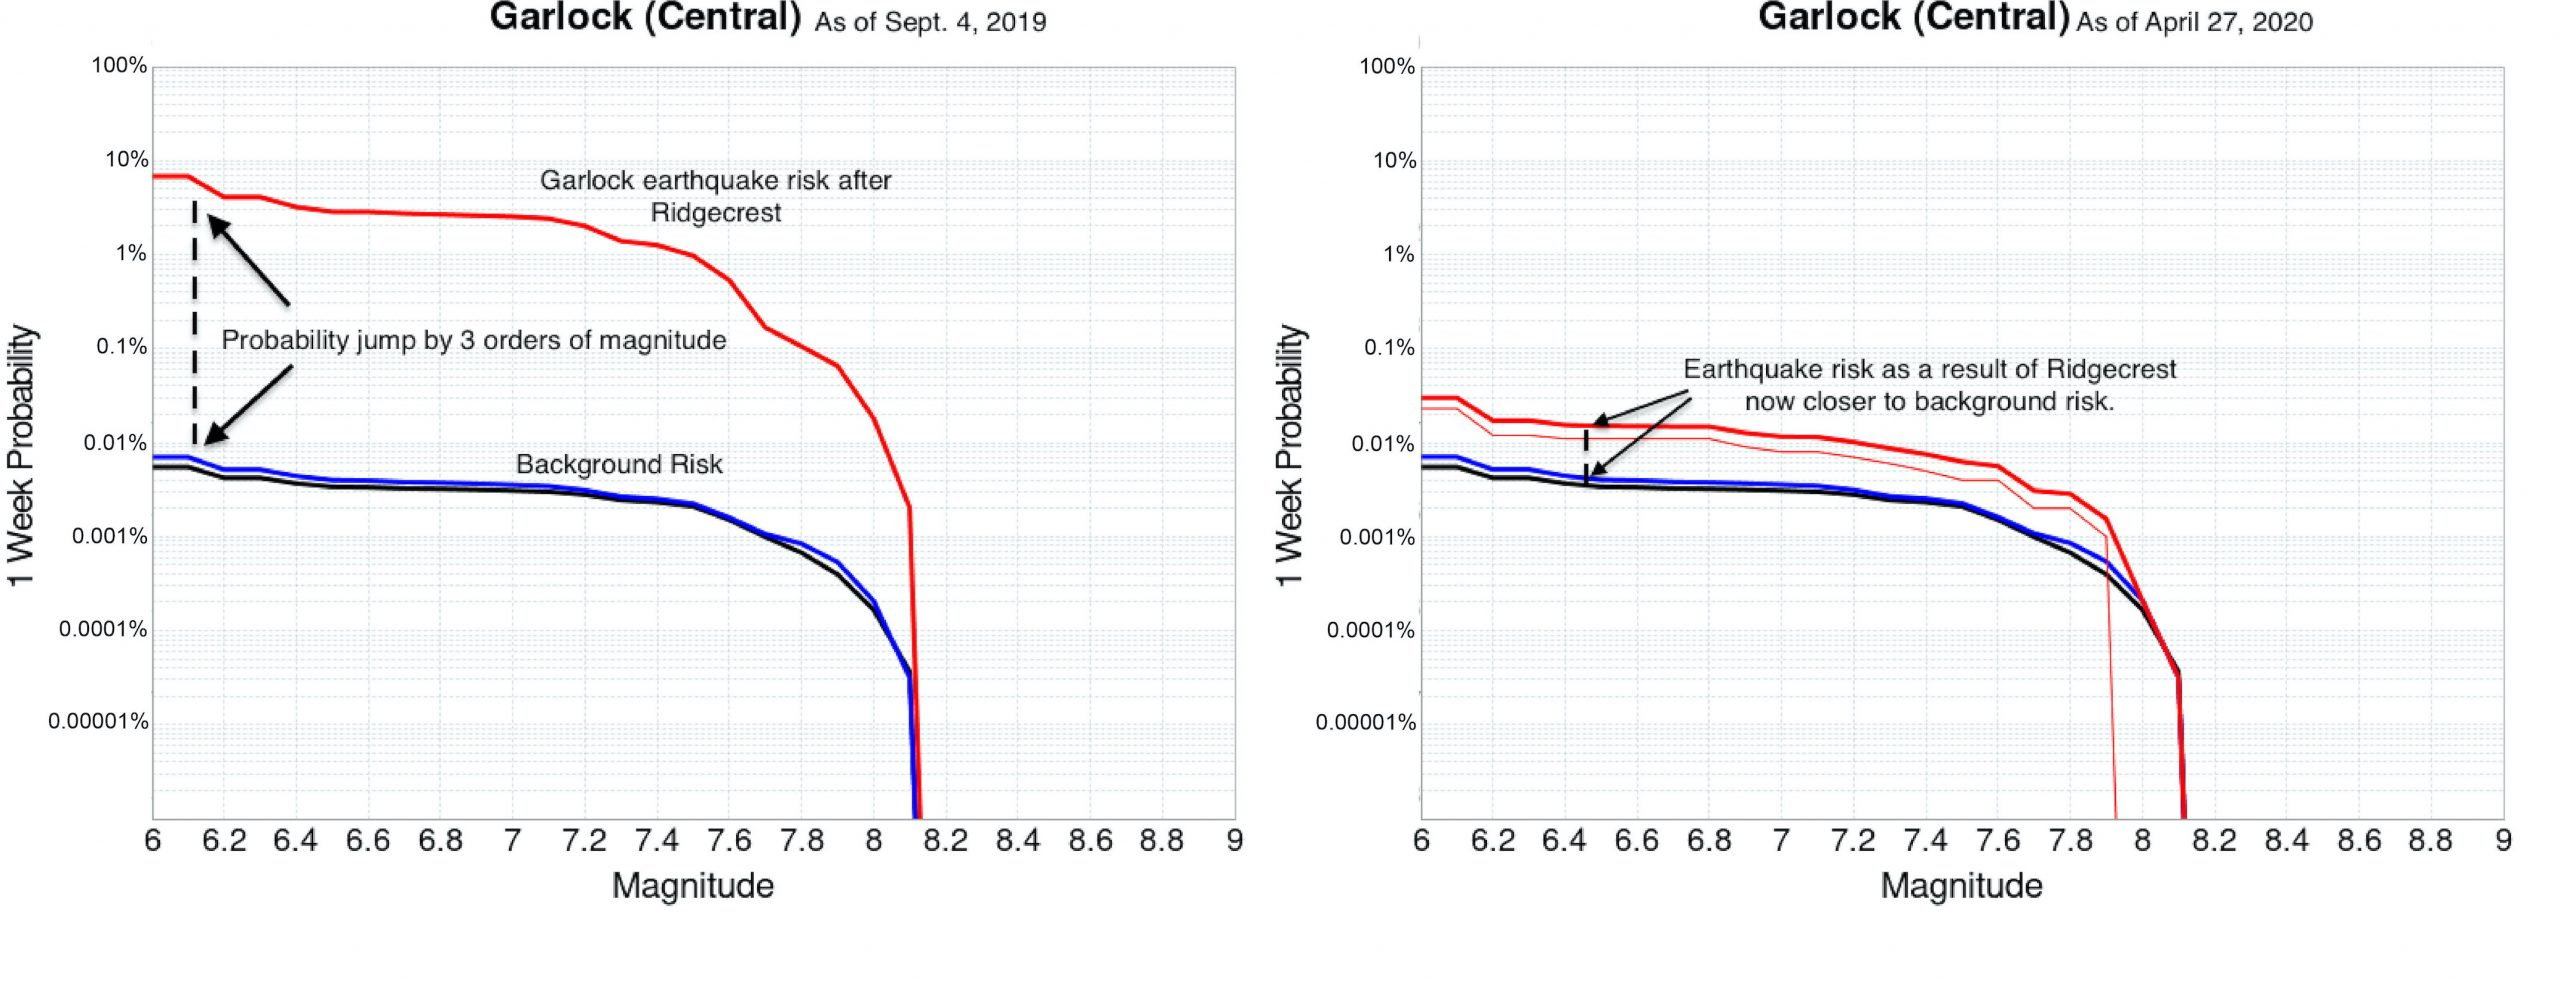 Garlock fault rupture forecasts over a 1-week interval. The black lines represent long-term background risk, blue lines represent the risk on these faults as time goes on, and the red lines generated by the new model add the Ridgecrest events onto these two lines, thus showing the most up to date risk with all events included. These two charts are separated by 7 months, clearly showing the Garlock settling back into its background, or time-independent, risk. Credit: Kevin Milner